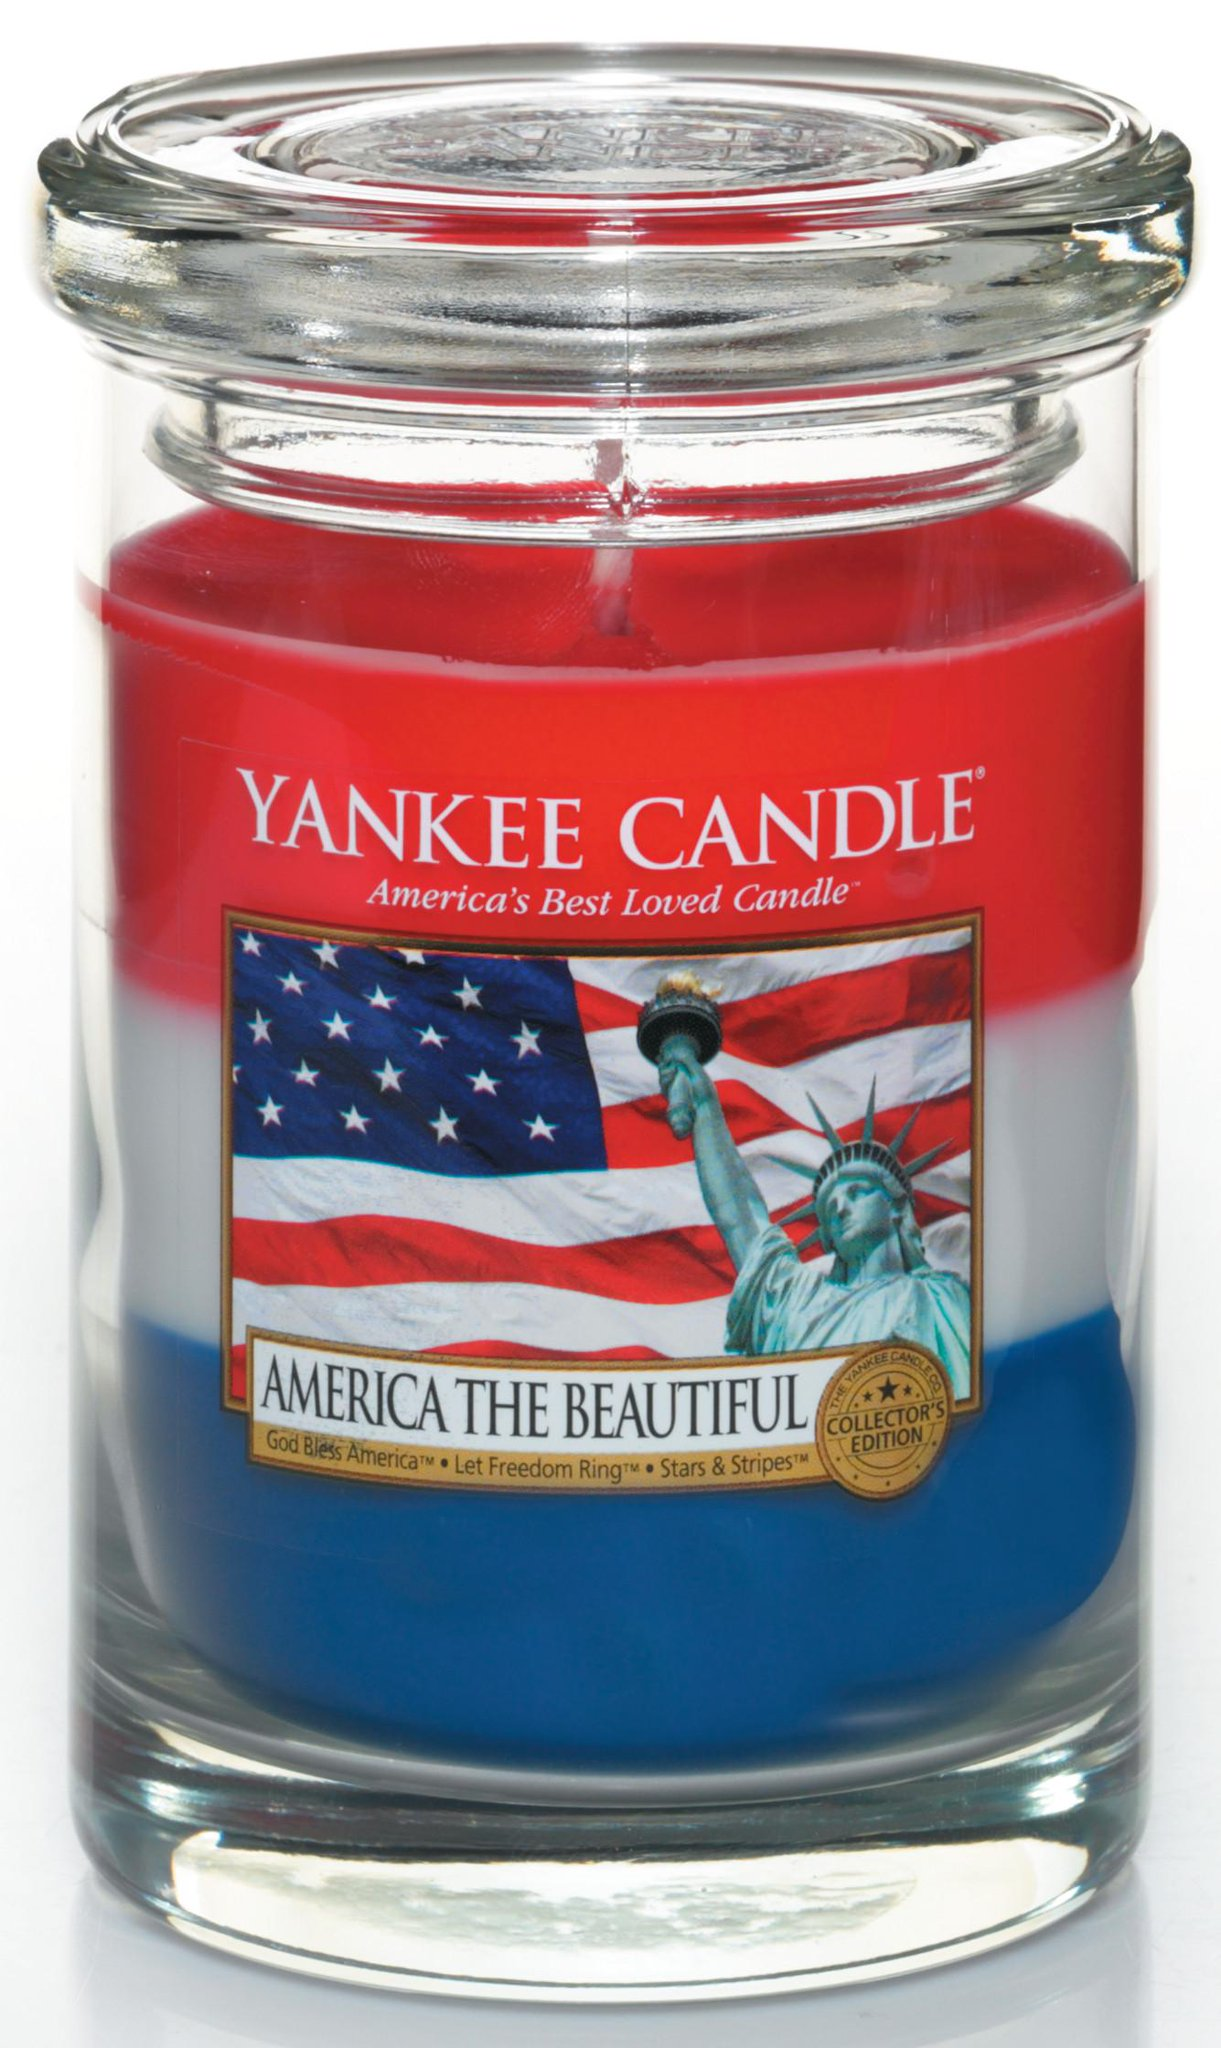 Product Description This Yankee Candle large jar candle is the perfect size for enjoying.